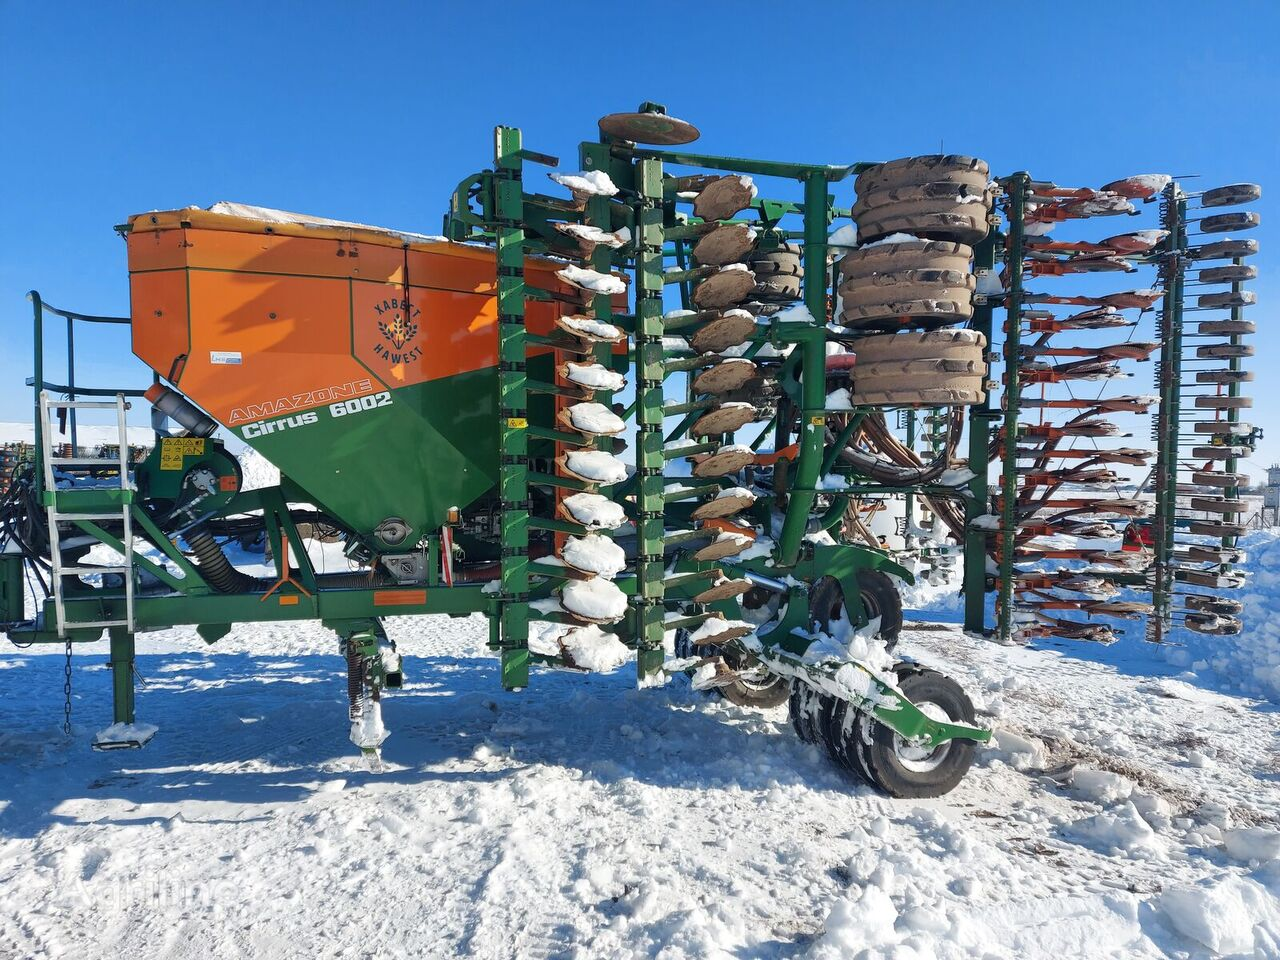 AMAZONE Cirrus 6002 Special pneumatic seed drill